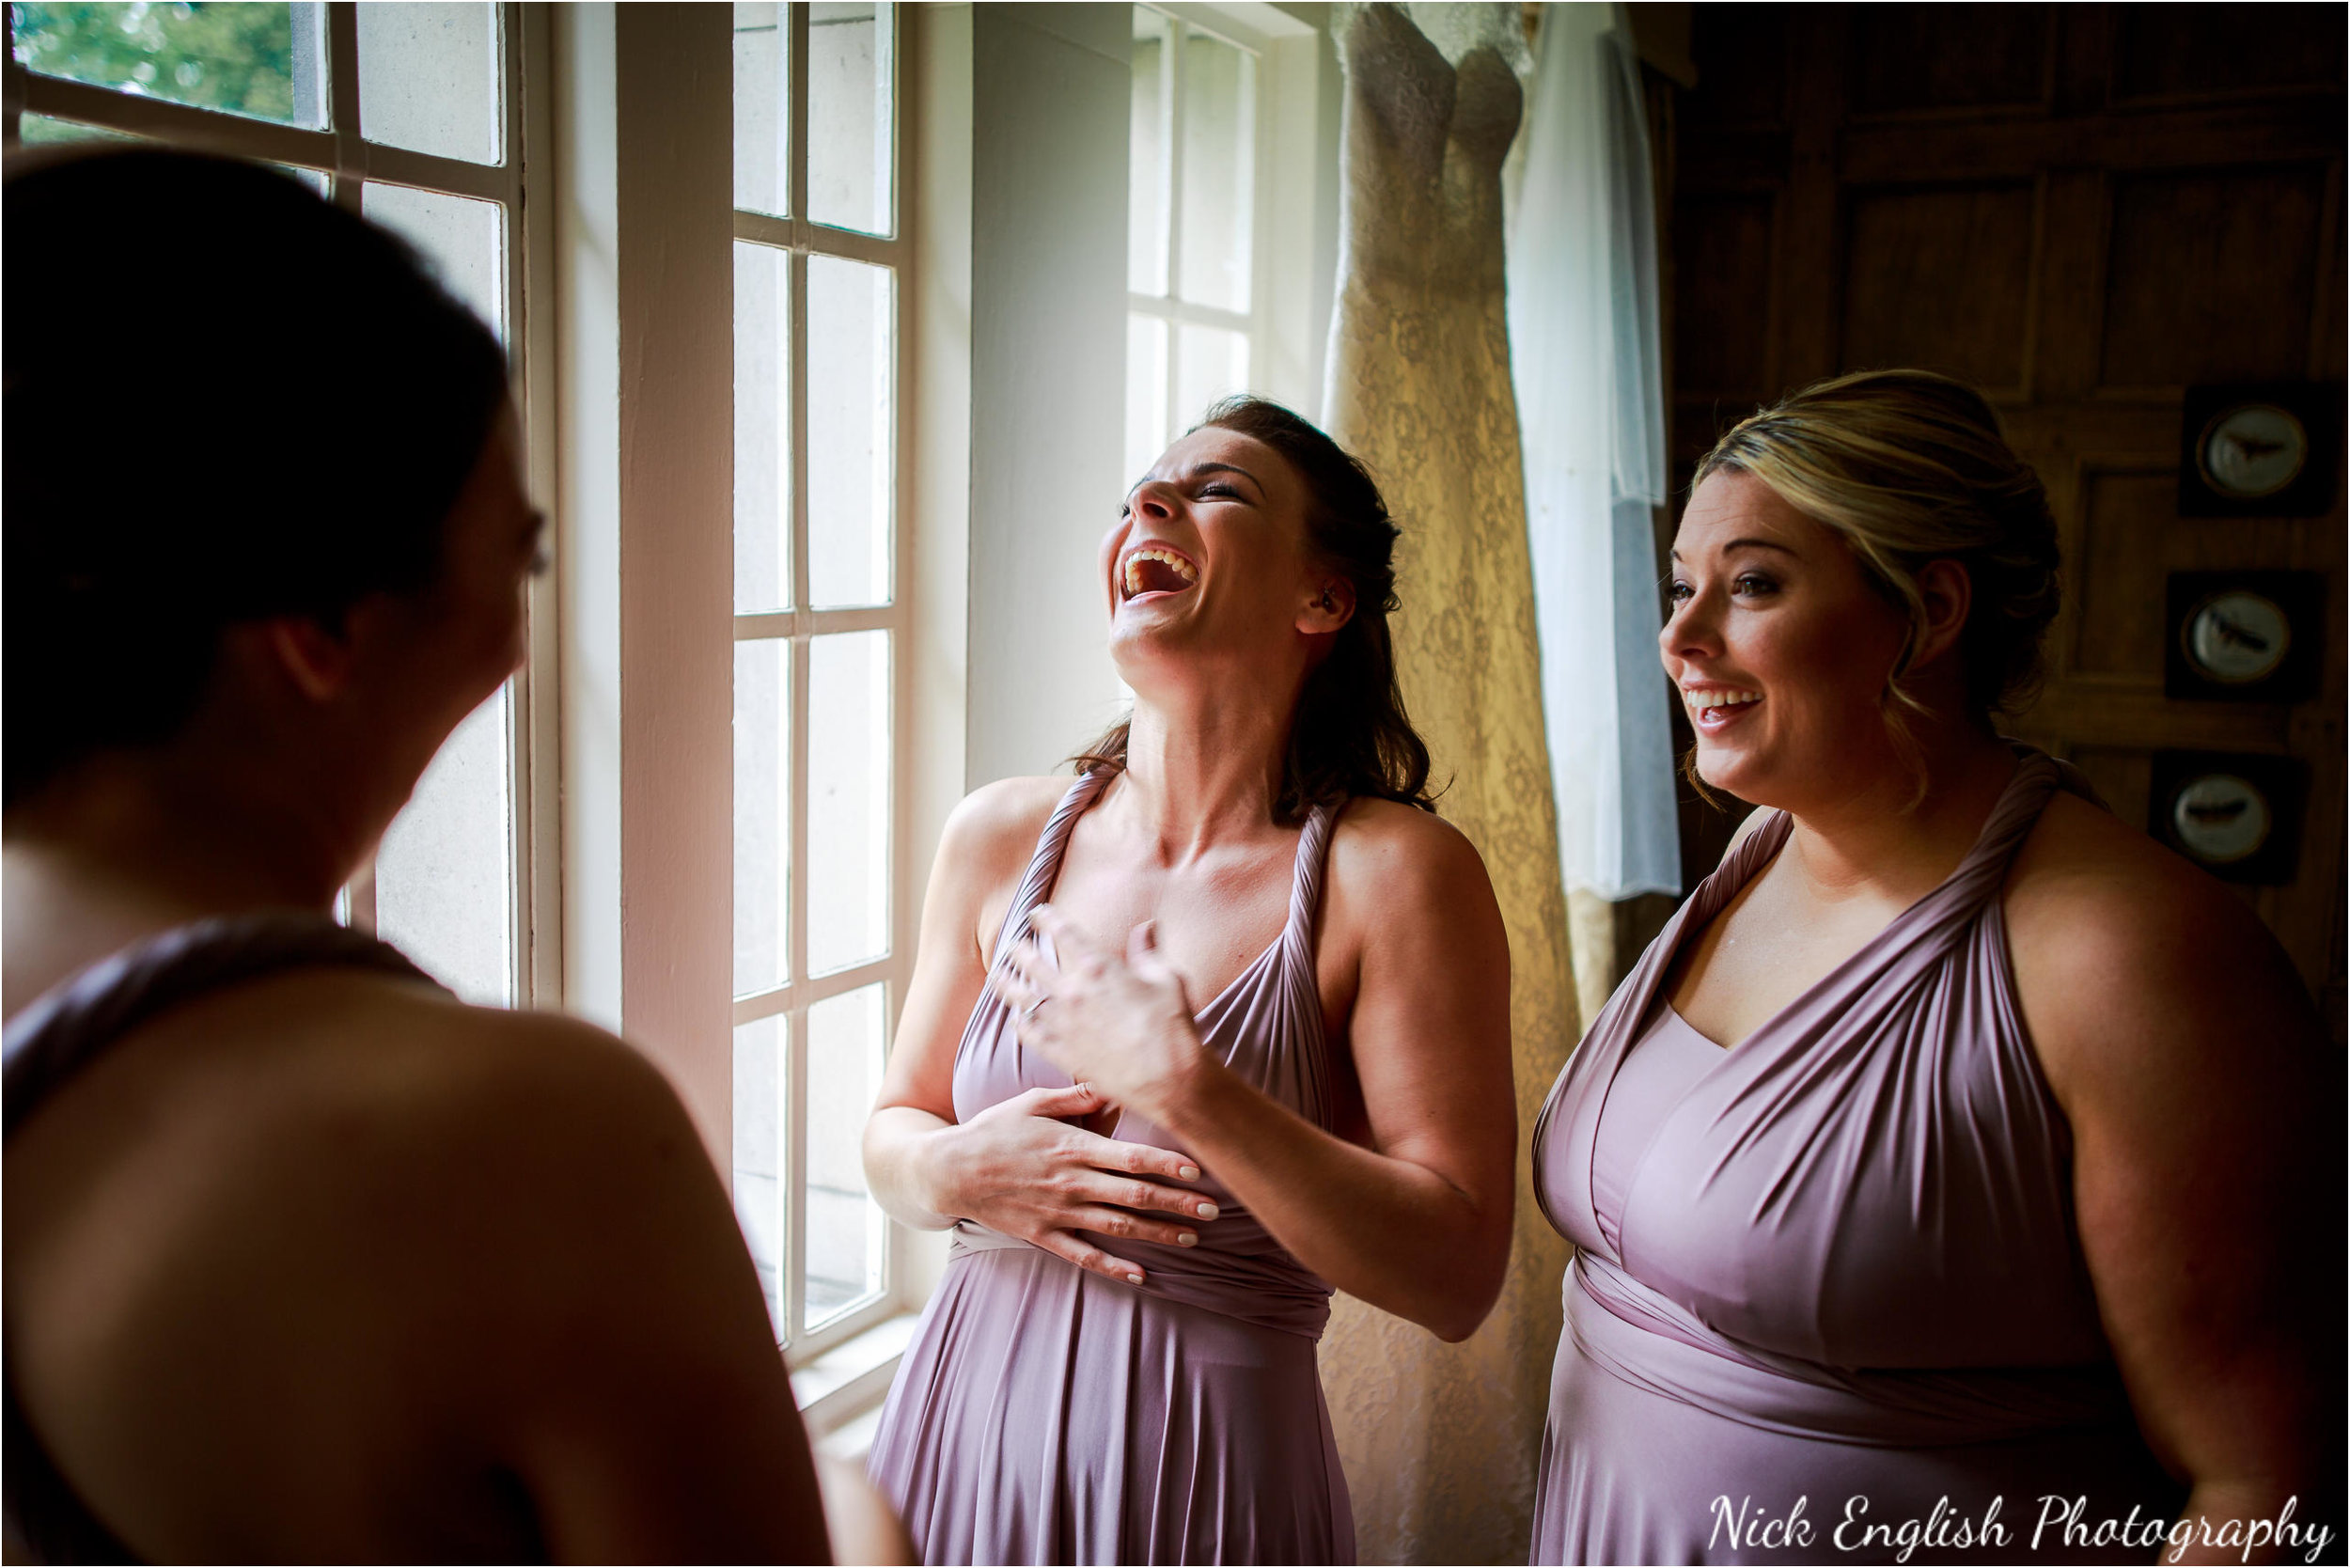 Alison James Wedding Photographs at Eaves Hall West Bradford 51jpg.jpeg